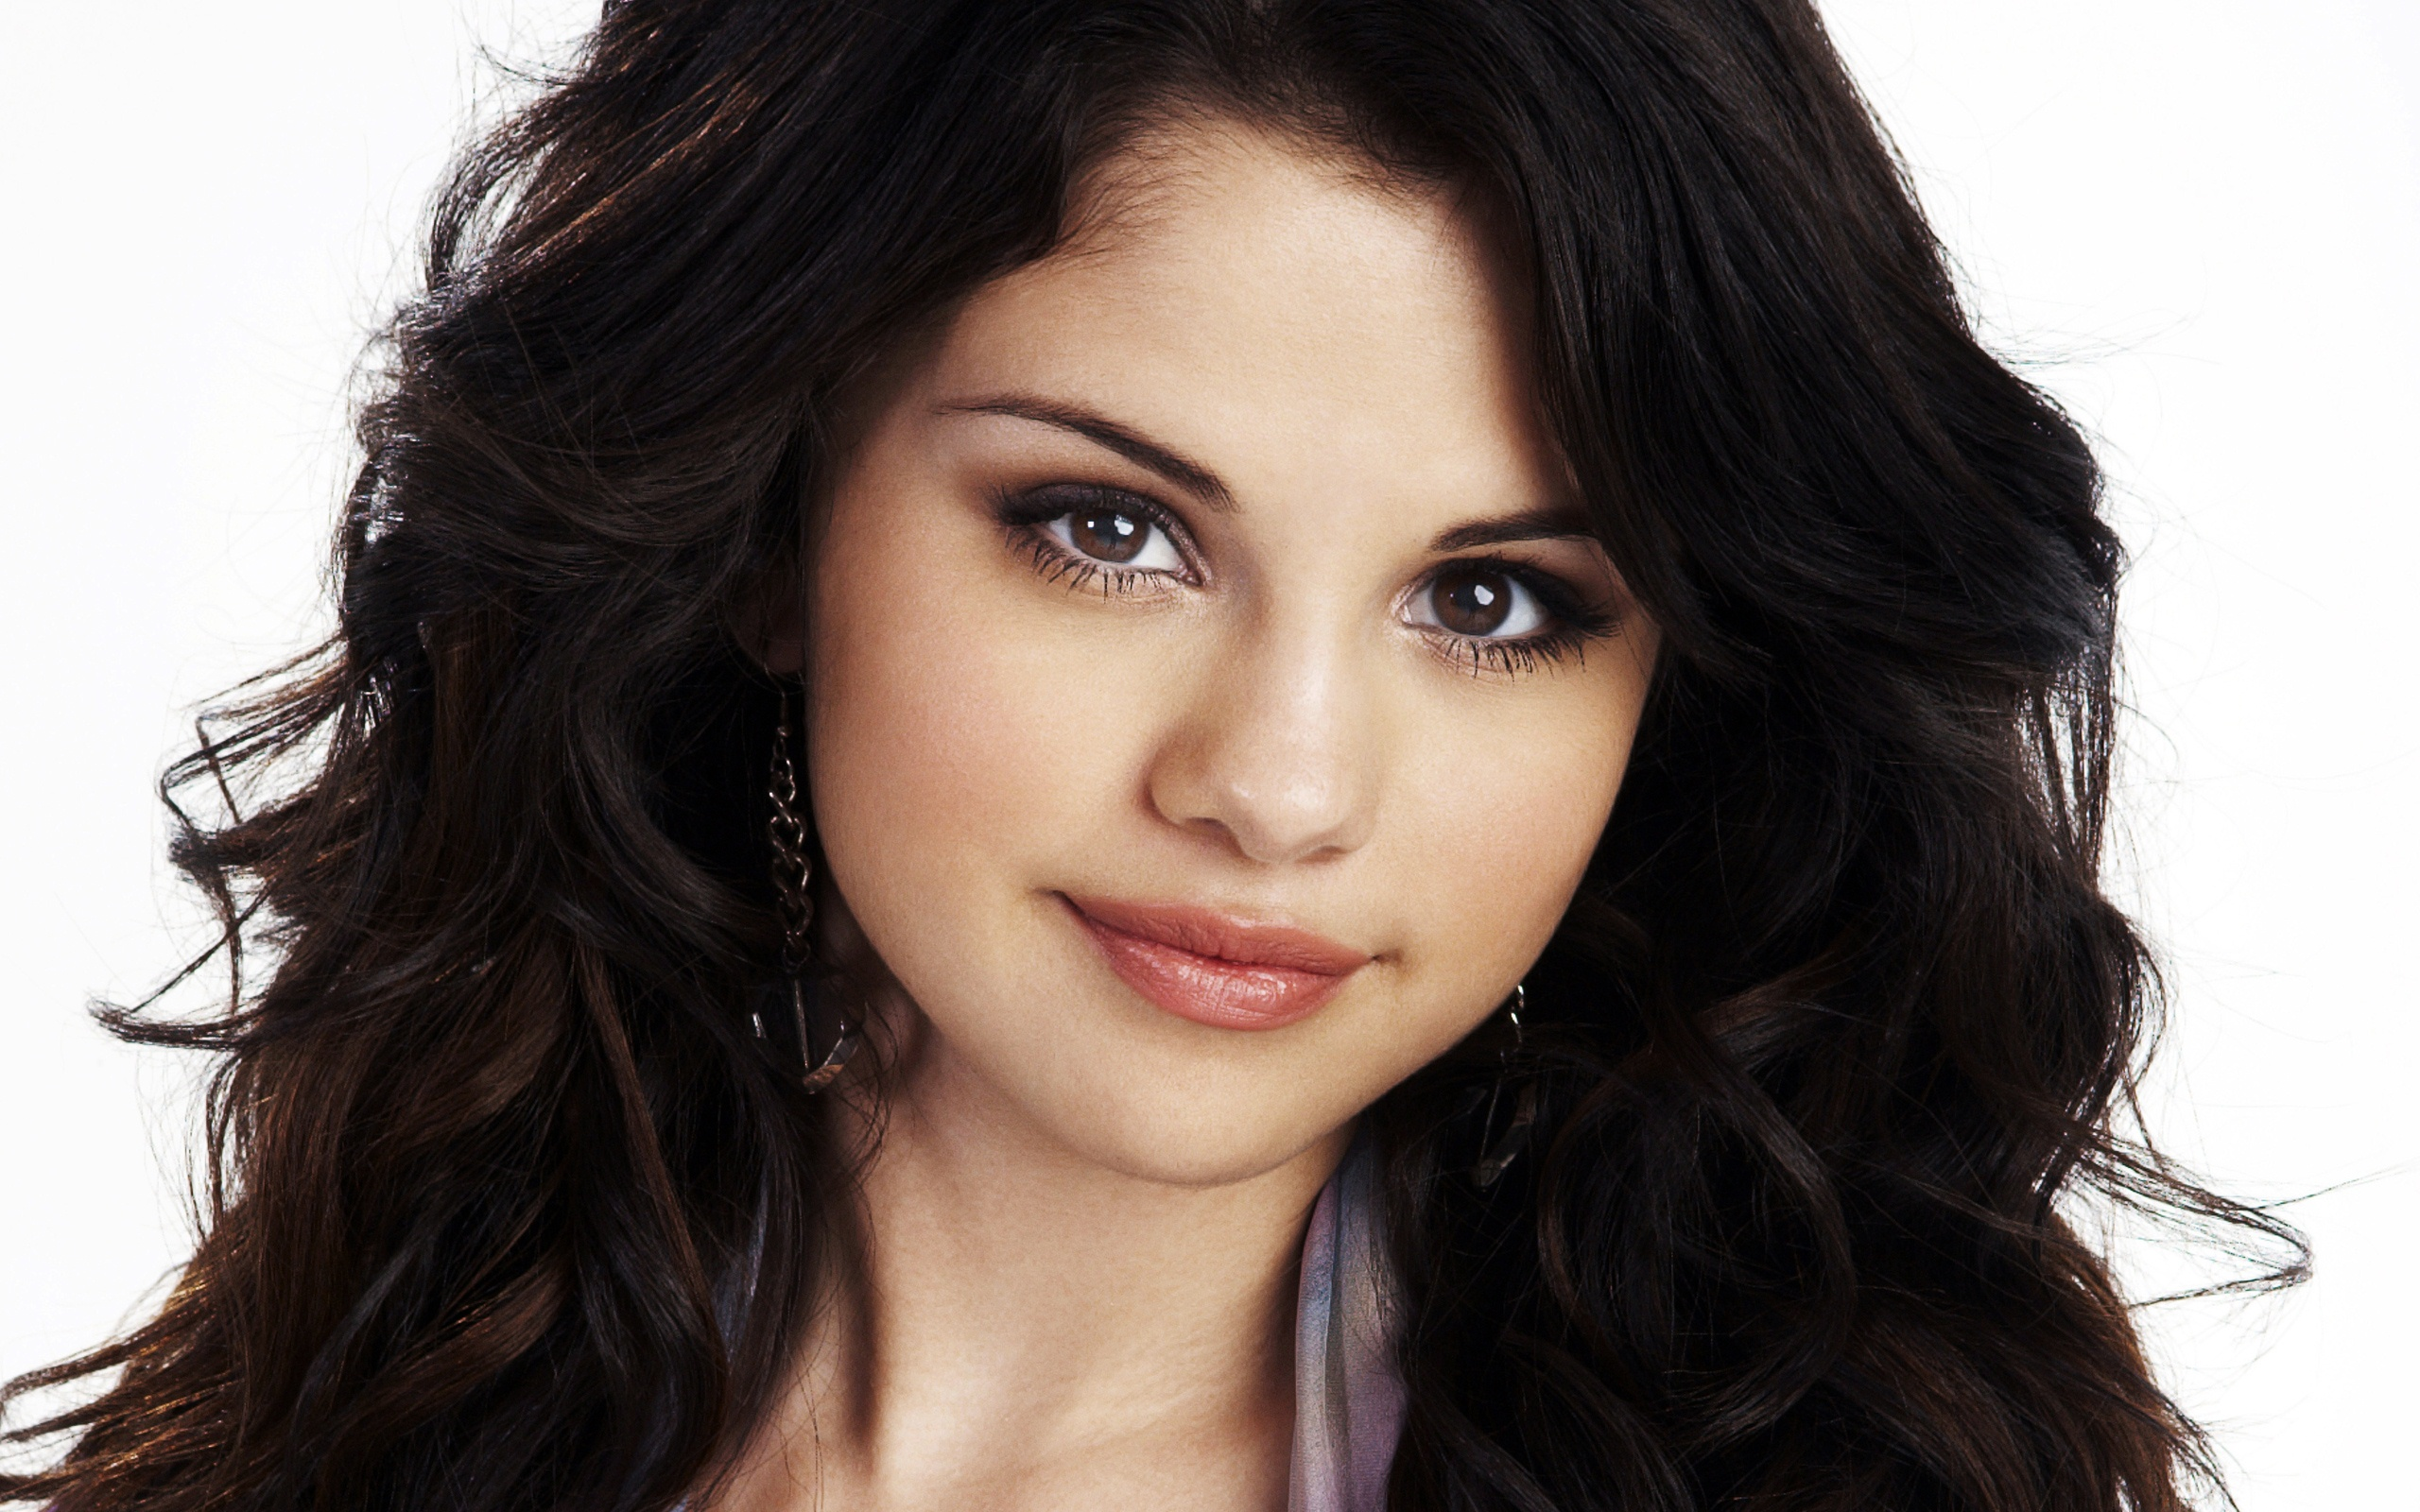 Selena Gomez 99 wallpaper